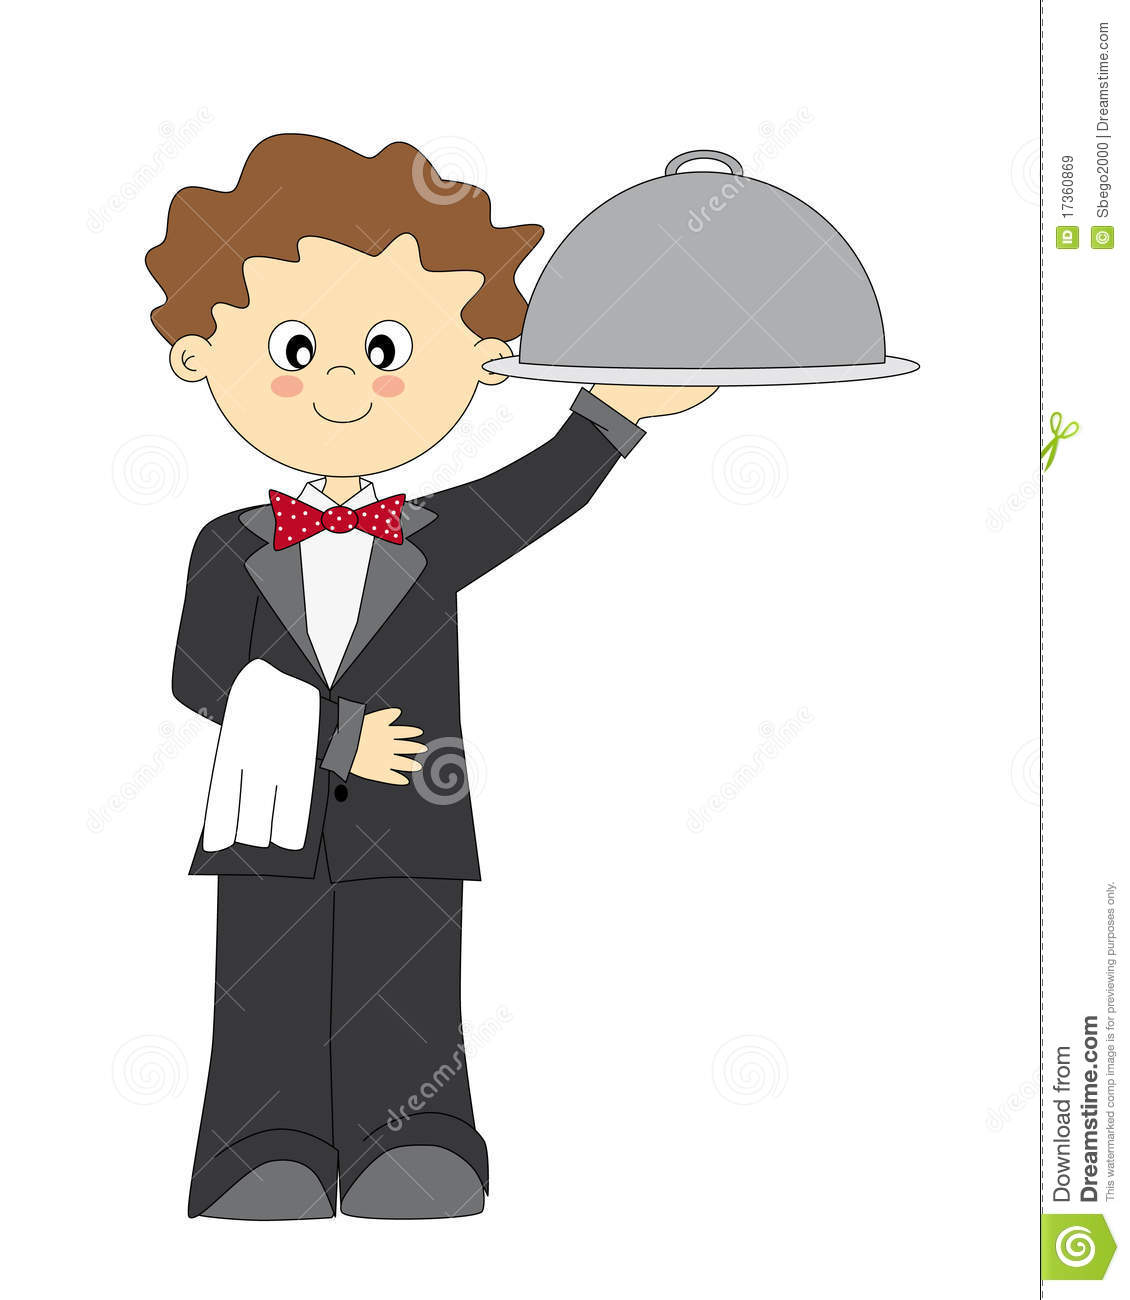 Waiter Royalty Free Stock Images - Image: 17360869